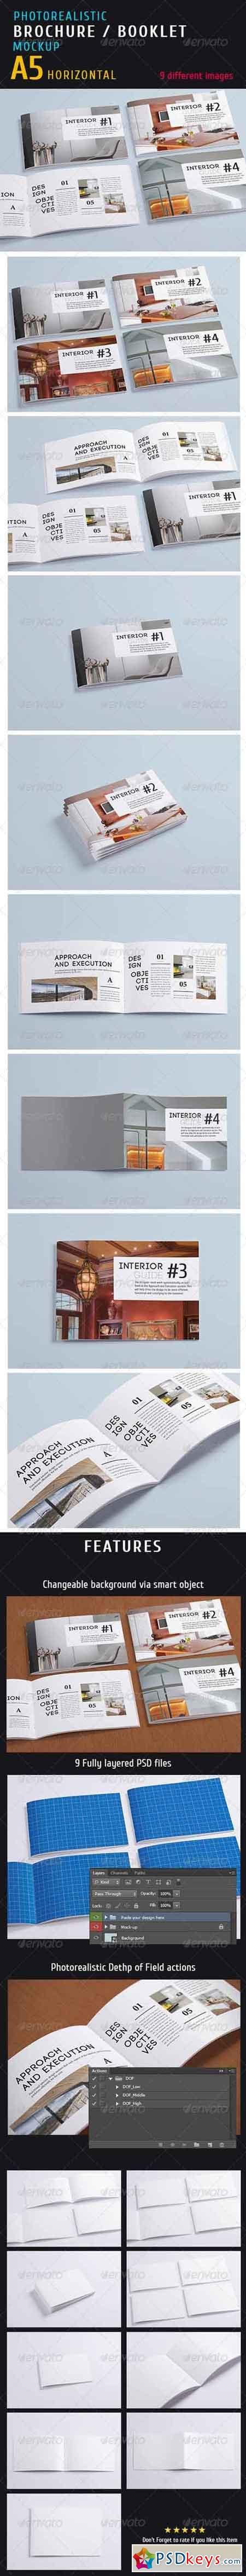 Photorealistic a5 Horizontal Magazine Mock-up 5397657